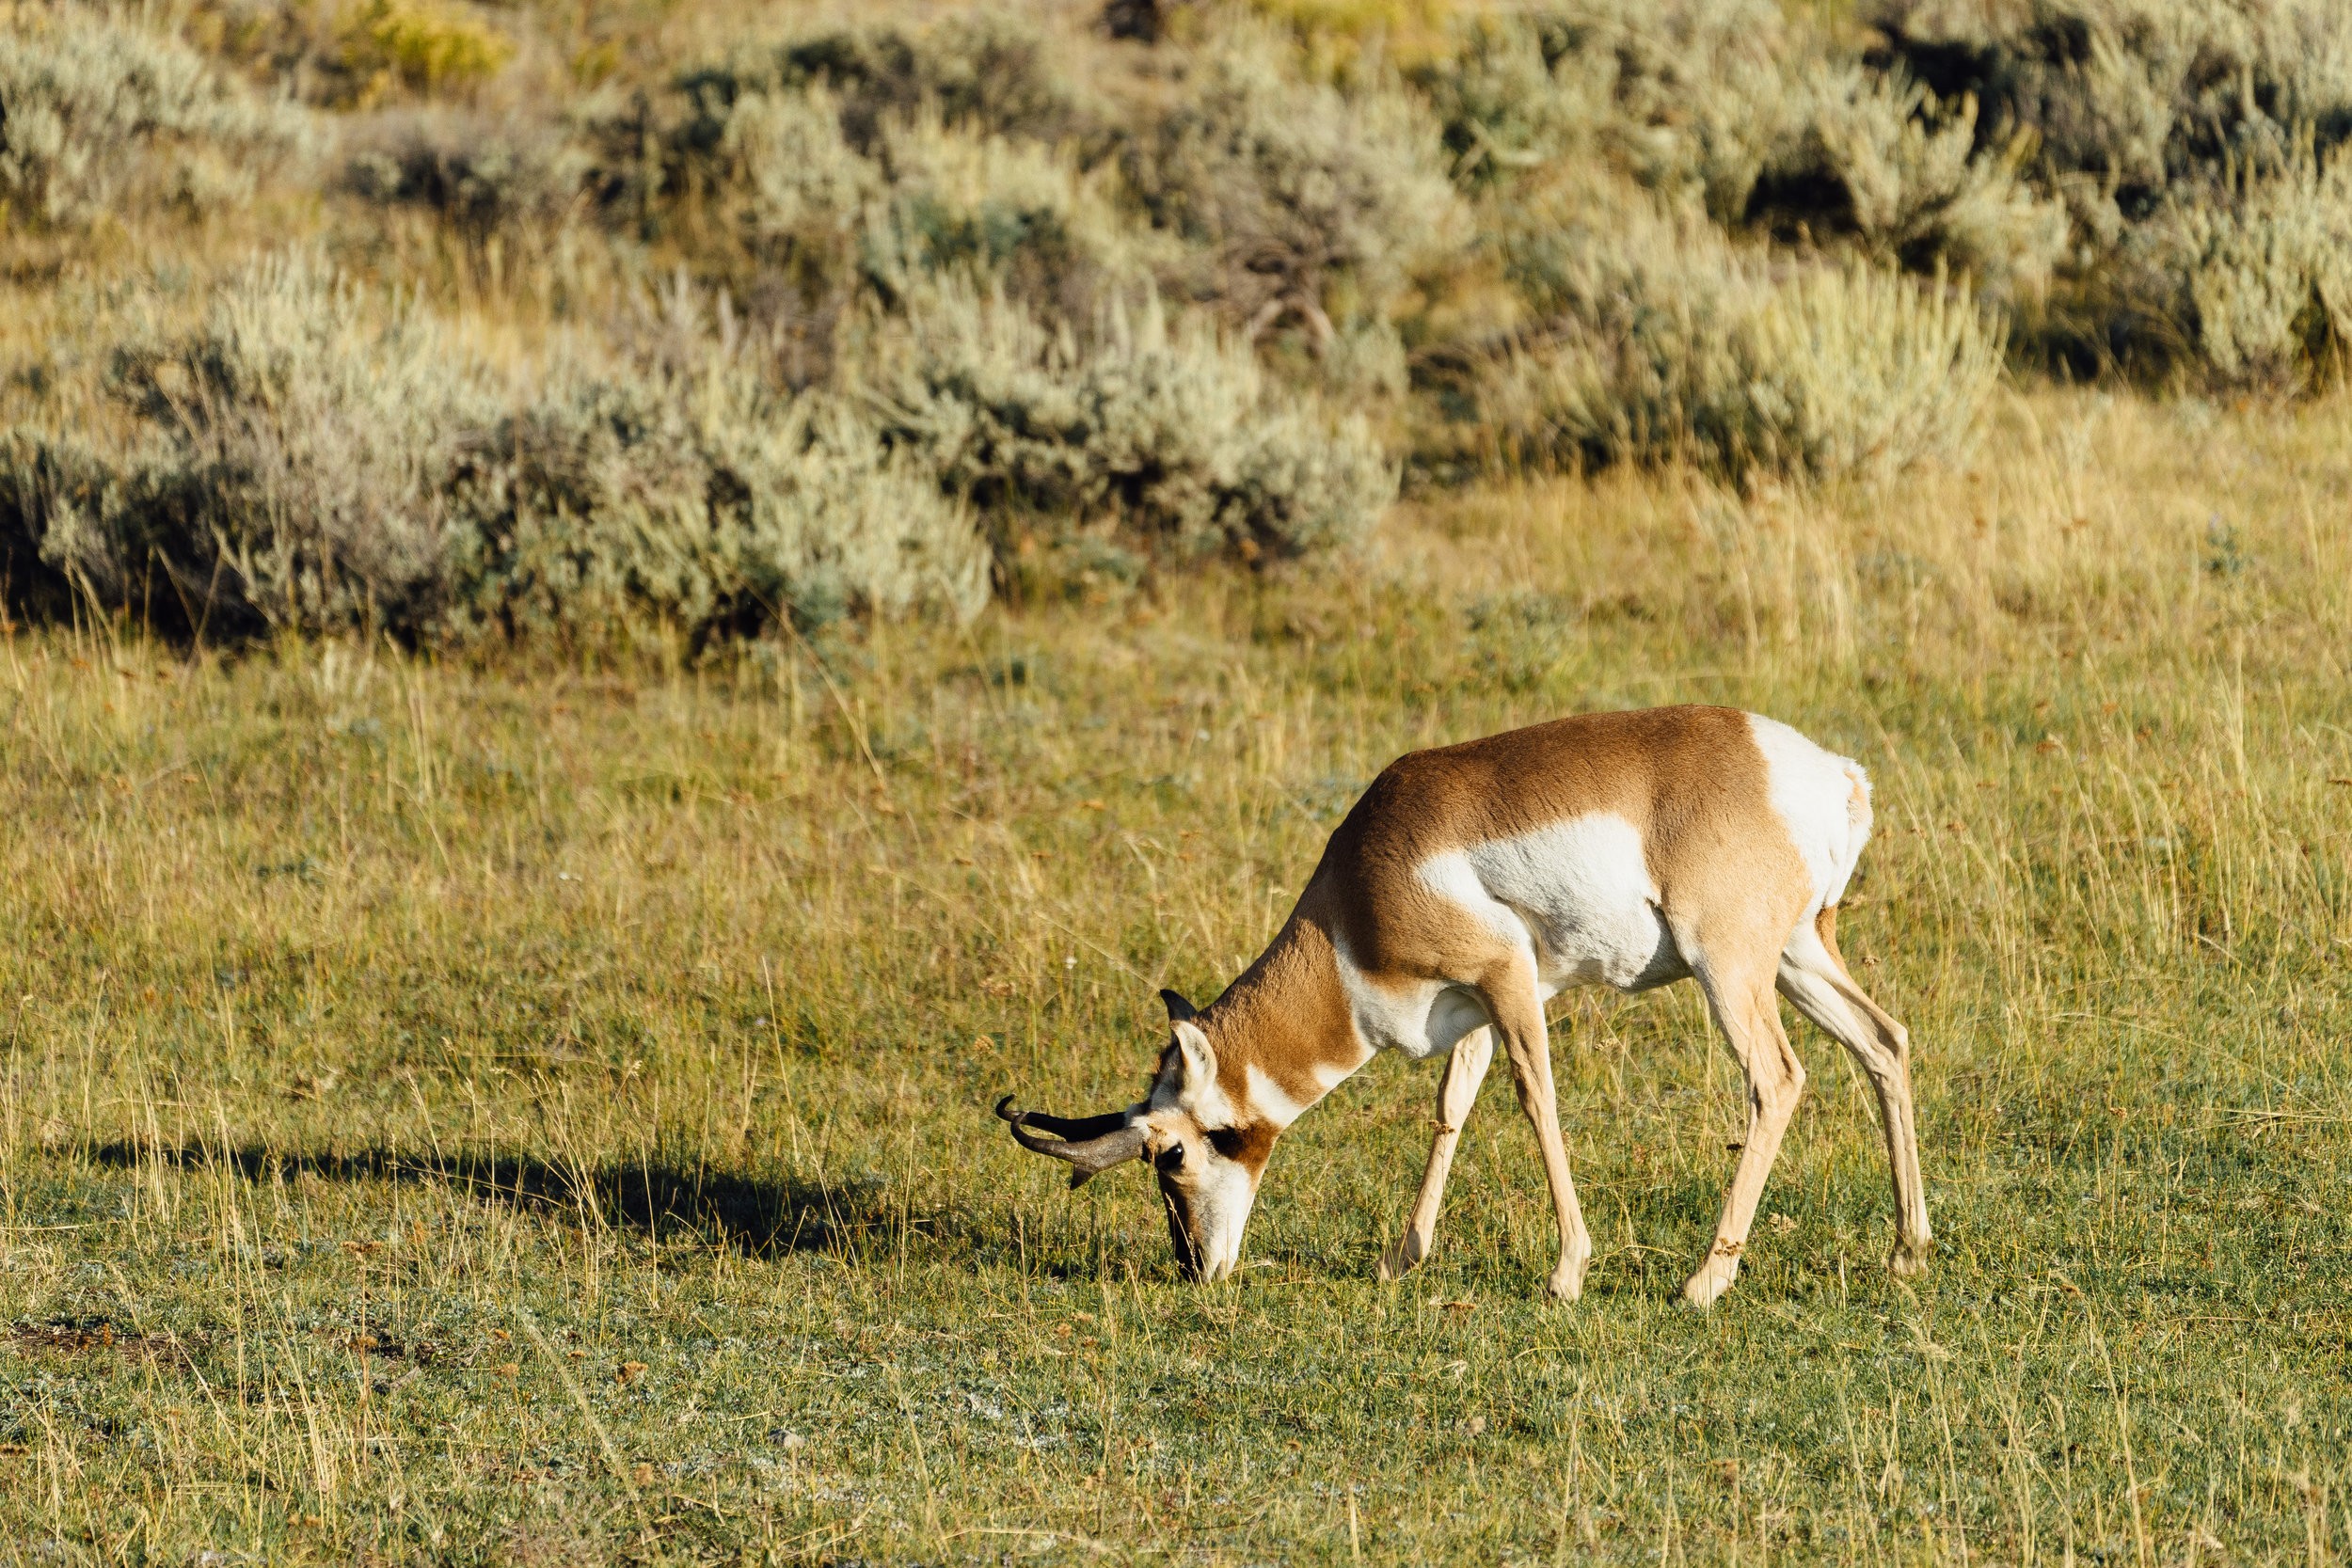 This is the  pronghorn  - the fastest land animal in North America! We didn't realized what it actually is until we got back home. According to the internet, it is a pretty rare sighting.